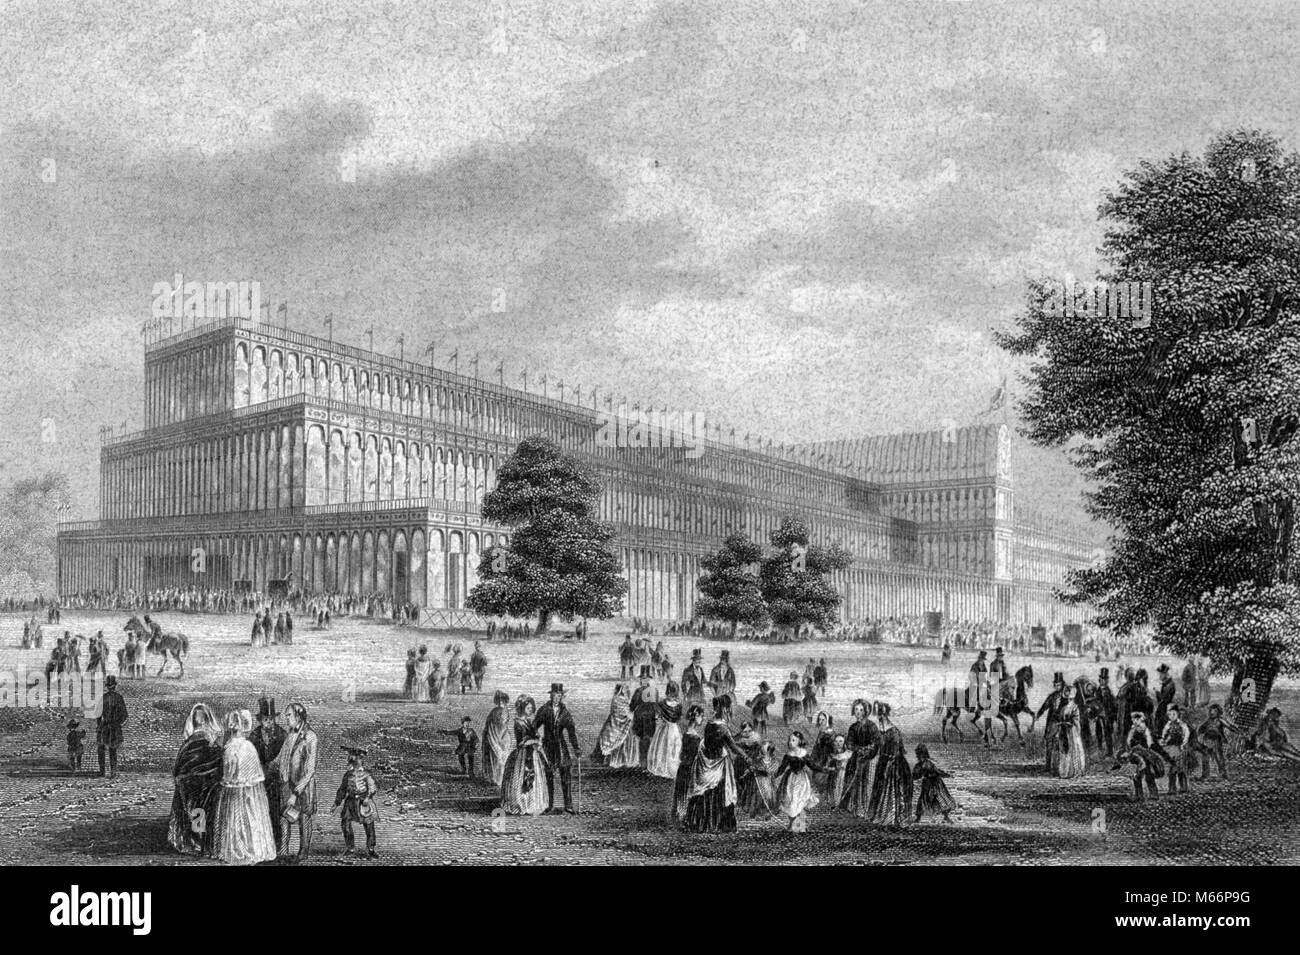 1800s 1850s 1851 THE CRYSTAL PALACE EXHIBITION HALL DESIGNED BY JOSEPH PAXTON THE GREAT EXHIBITION LONDON ENGLAND - Stock Image